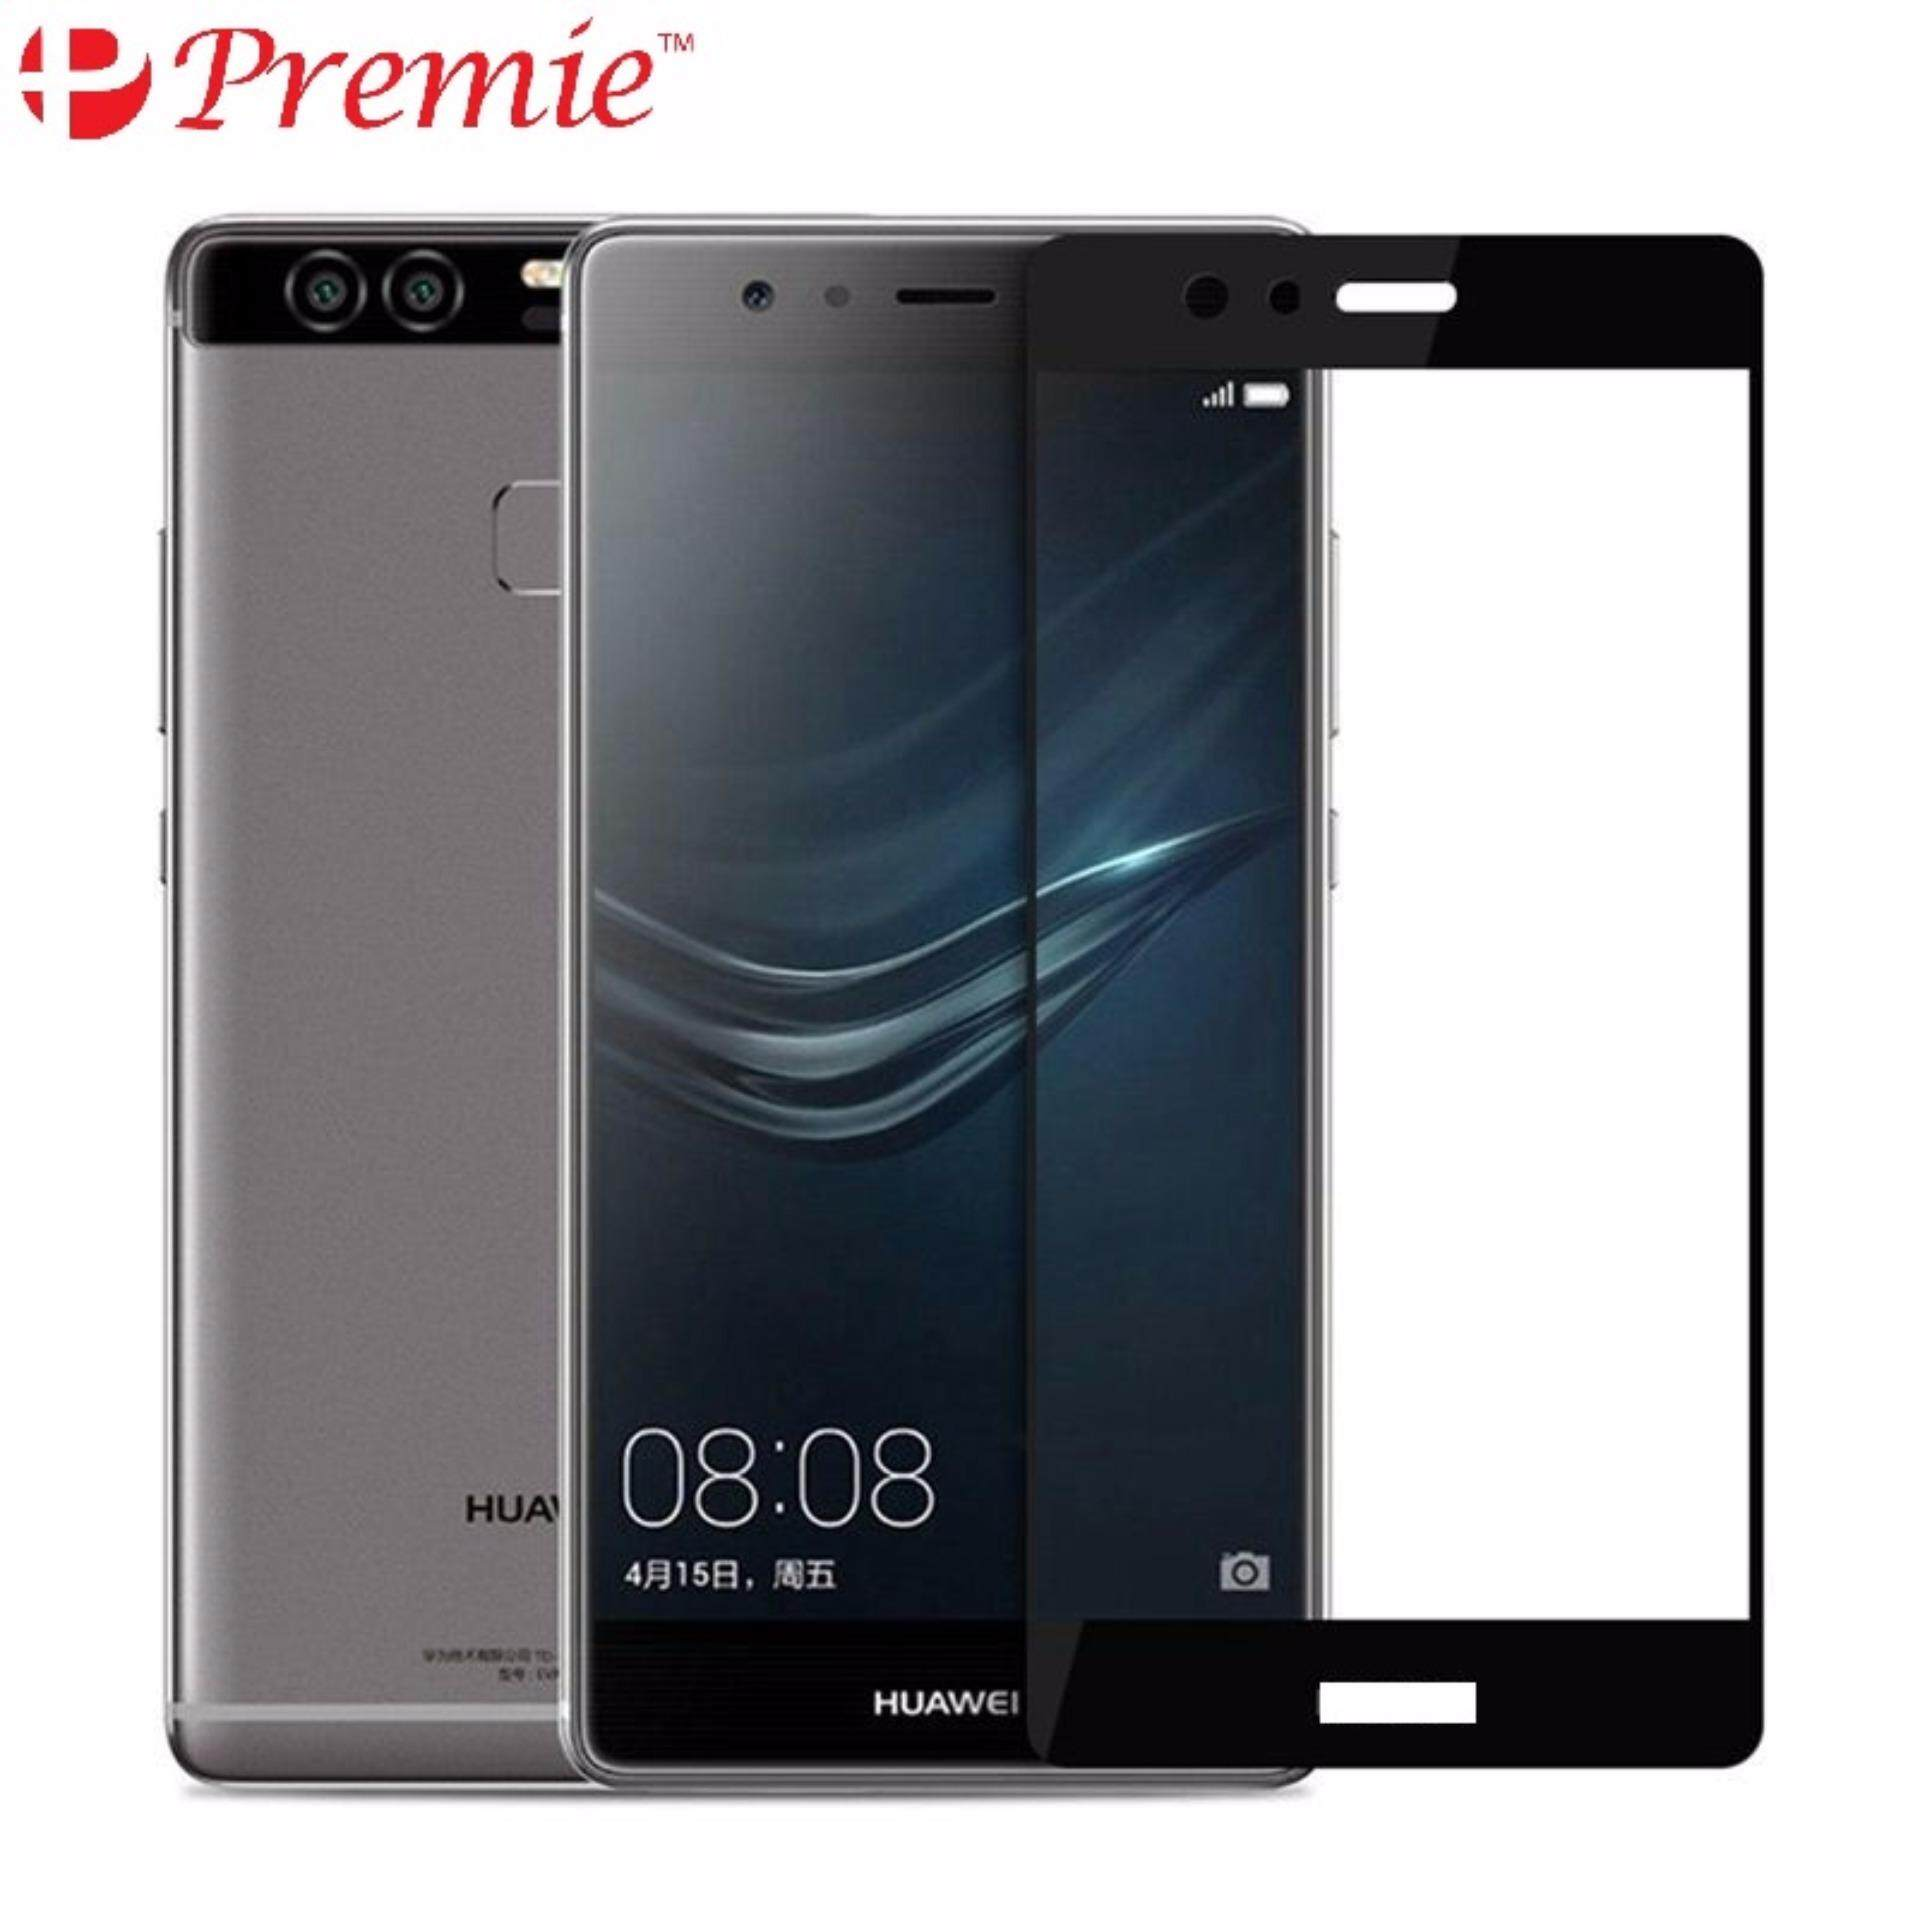 PREMIE Huawei P10 Full Cover Curved Tempered Glass Screen Protector (Black)